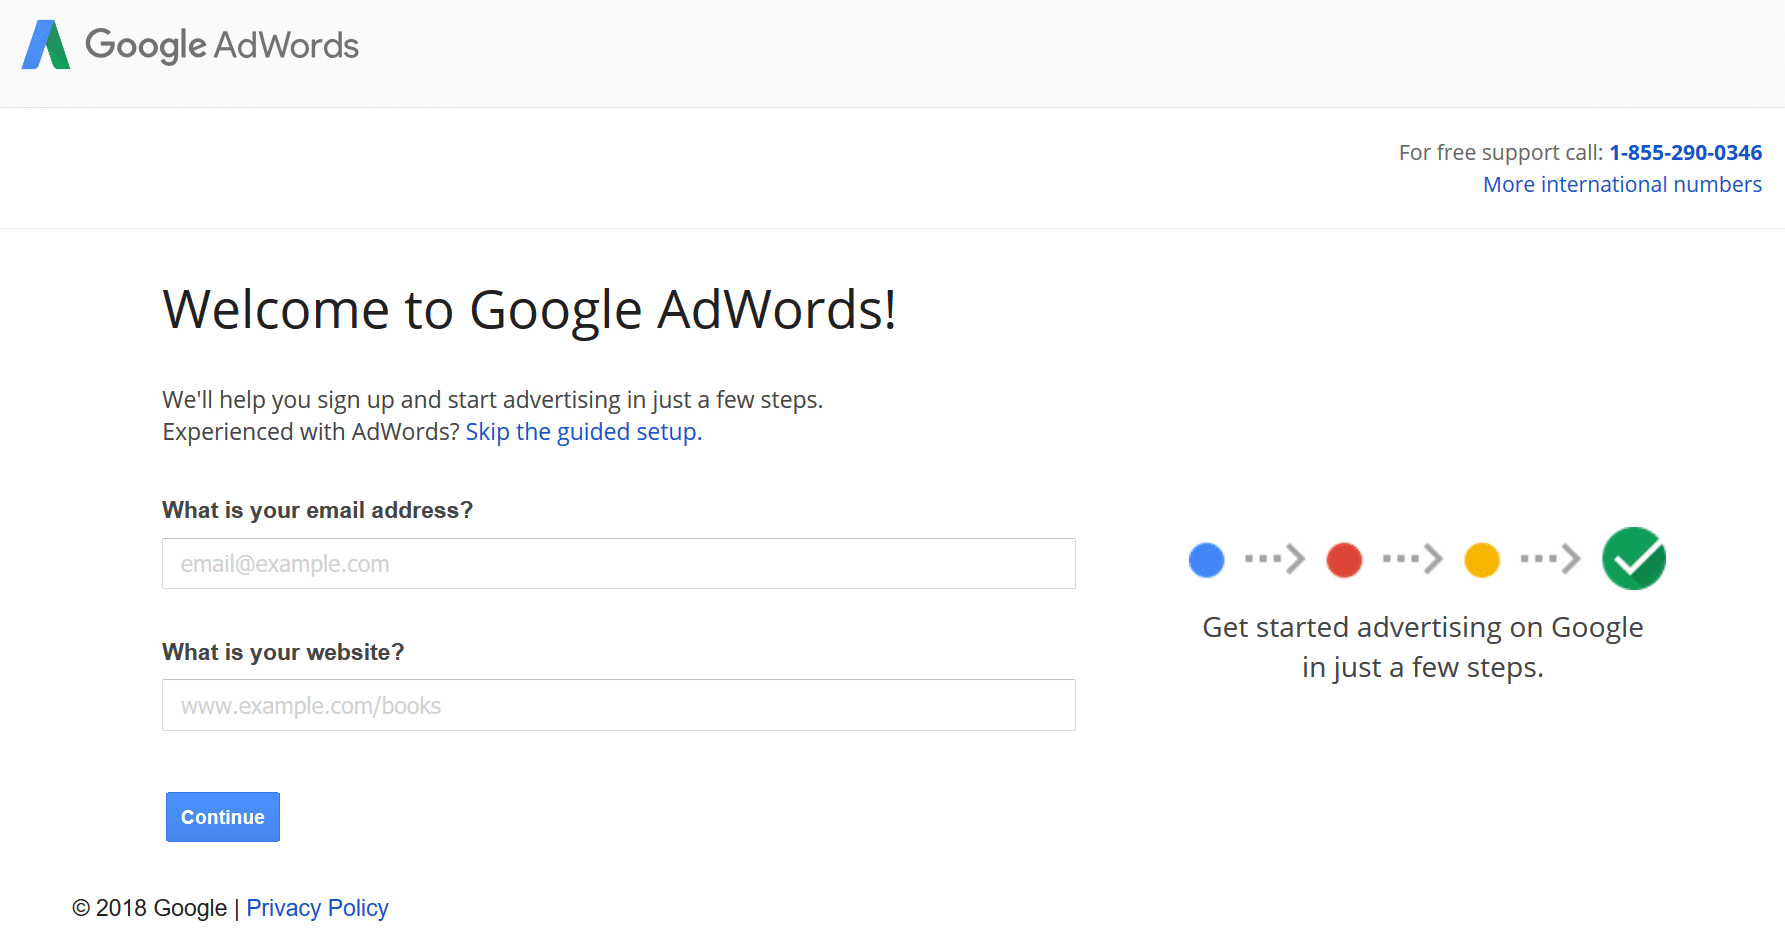 Sign up for Google AdWords